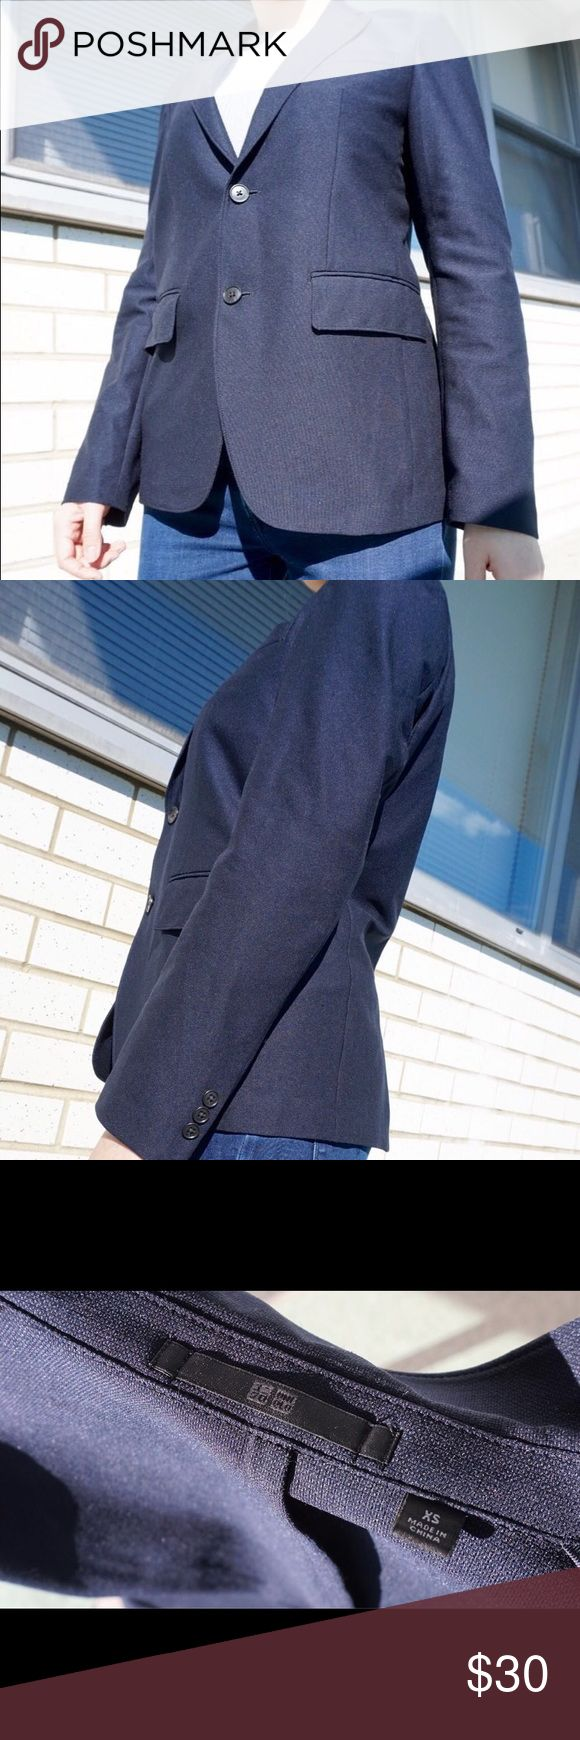 Uniqlo Navy Blue Classic Blazer Classic Jil Sander Inspired jacket from Uniqlo, single breasted, two buttons in front. Uniqlo Jackets & Coats